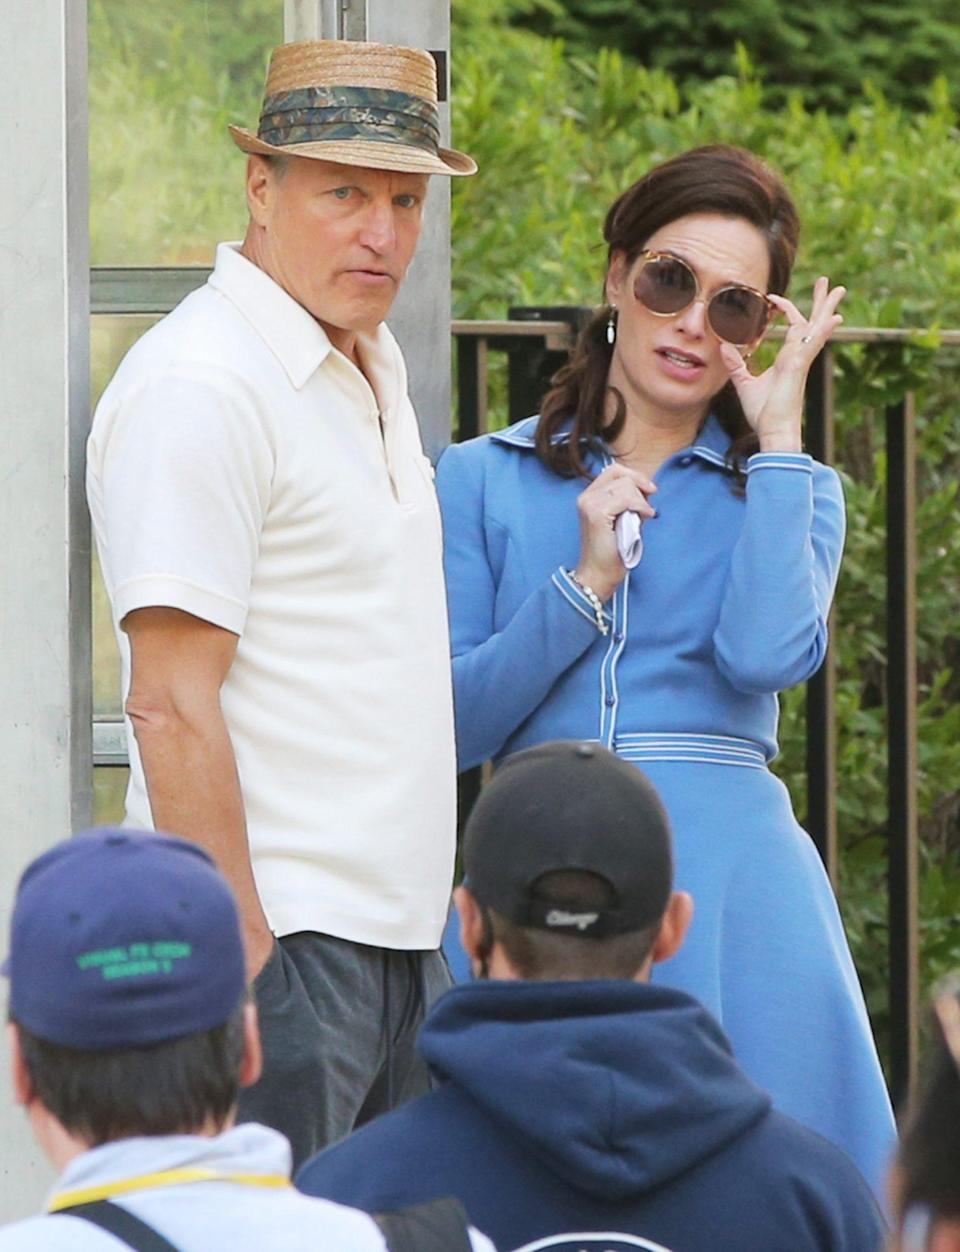 <p>Woody Harrelson and Lena Headey are seen on the set of <em>The White House Plumbers</em> in Albany, New York on June 16. </p>